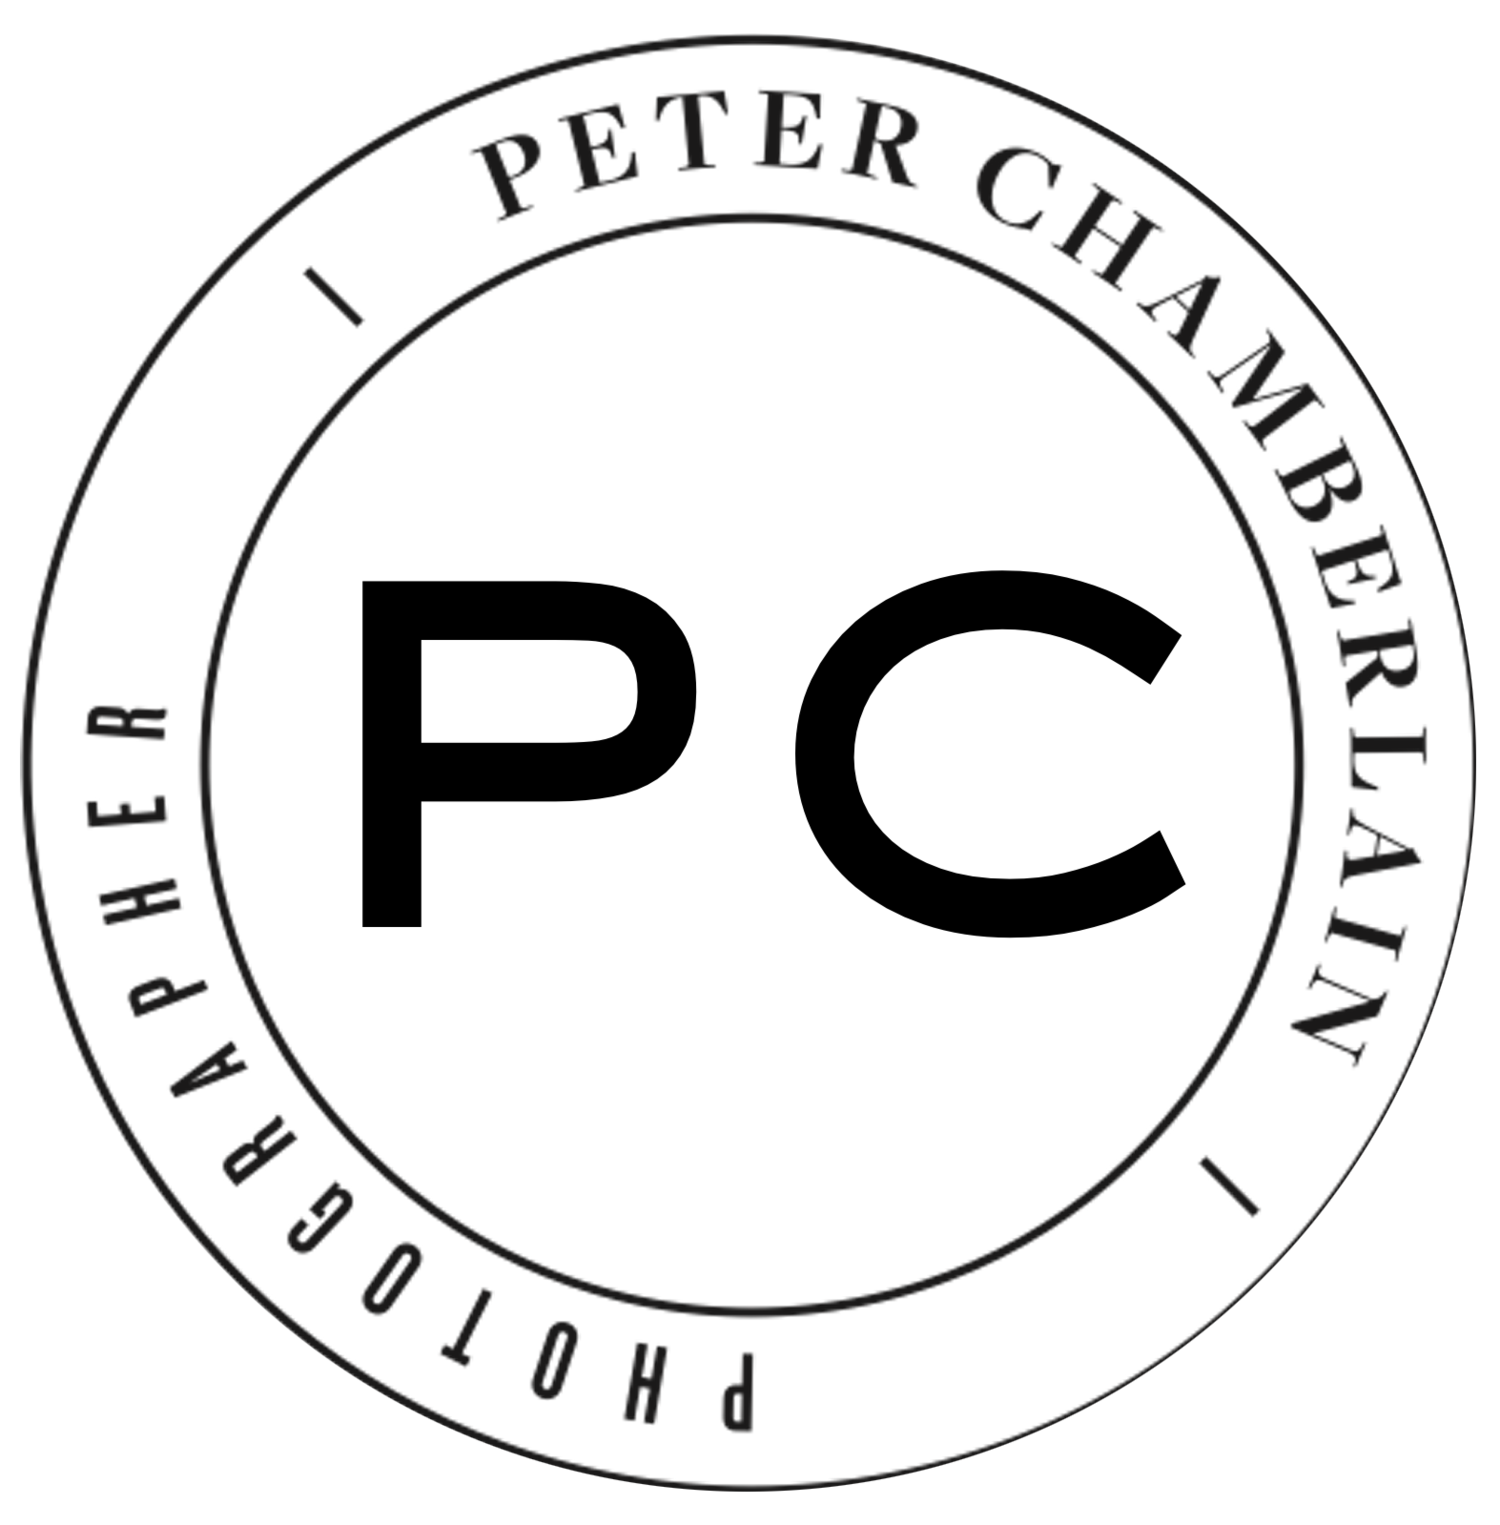 Peter Chamberlain - Photography